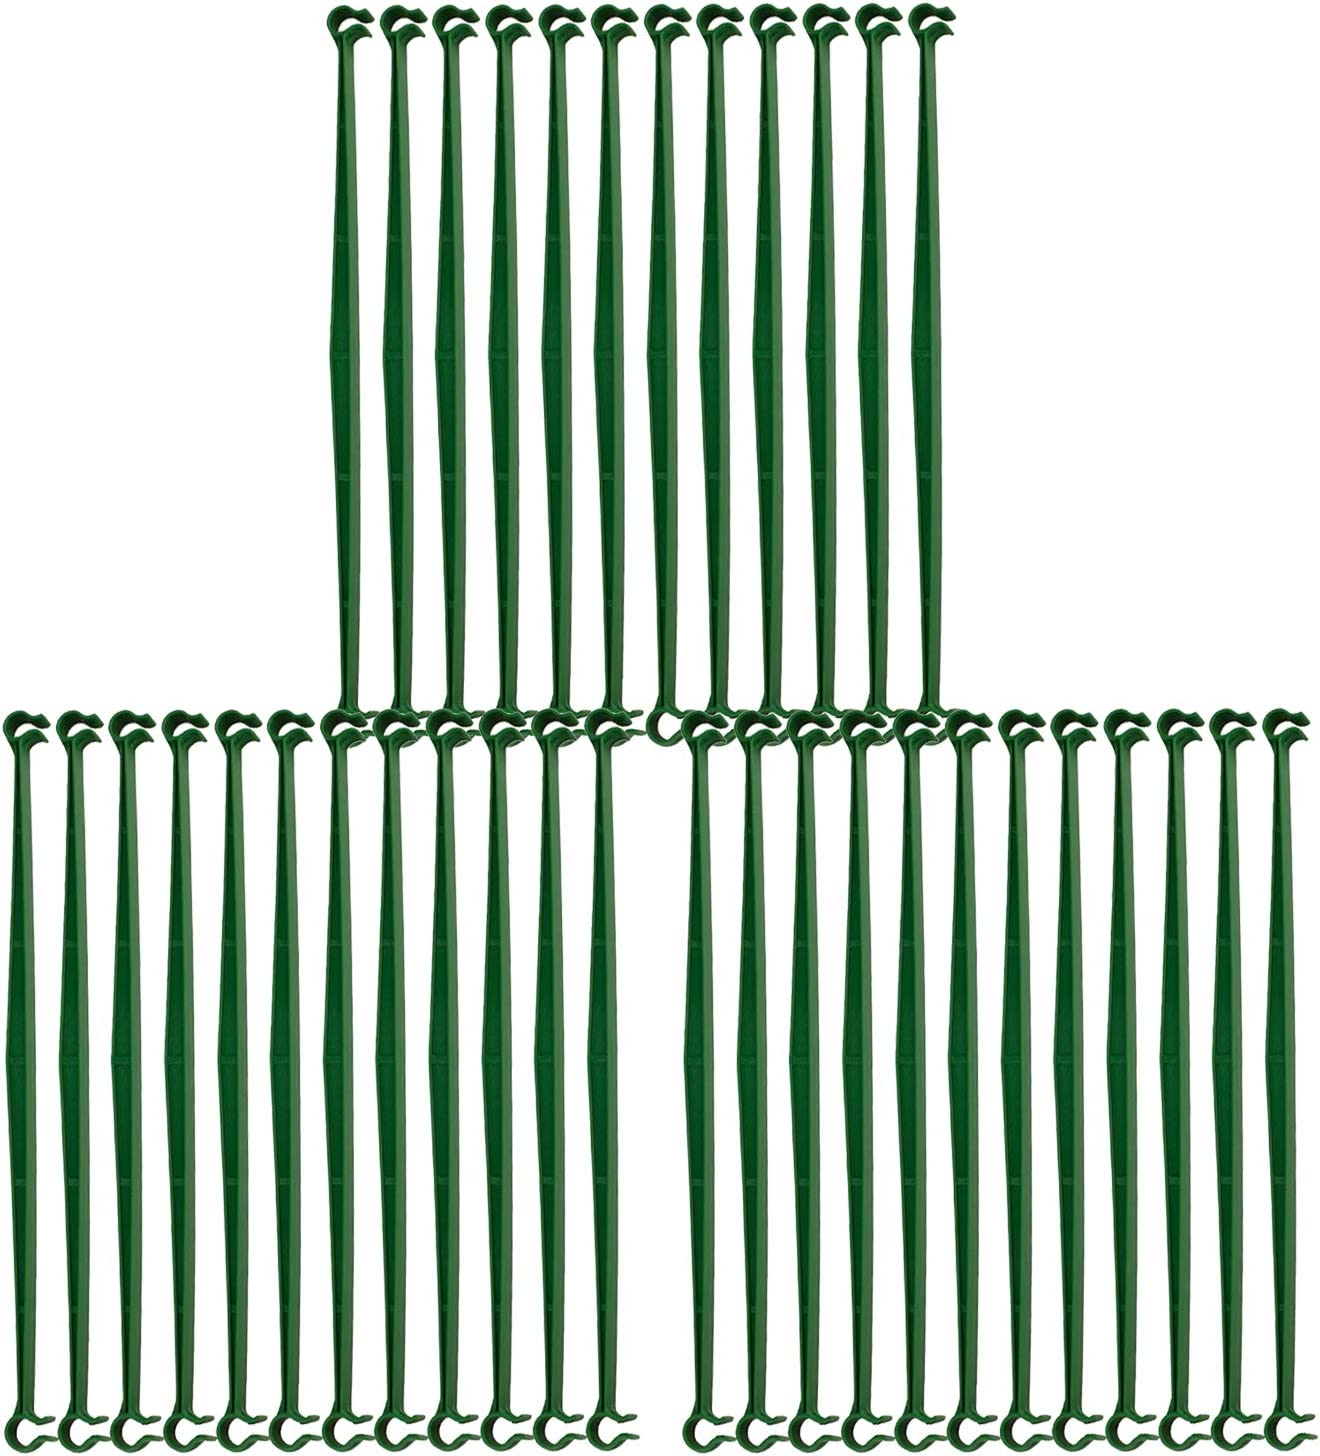 Firlar 36 PCS Garden Trellis Connectors, Garden Stakes Arms for Tomato Cage Attach 11mm Diameter Plant Stakes, 11.8in Plastic Connecting Rod Brackets Gardening Supplies for Vertical Climbing Plants